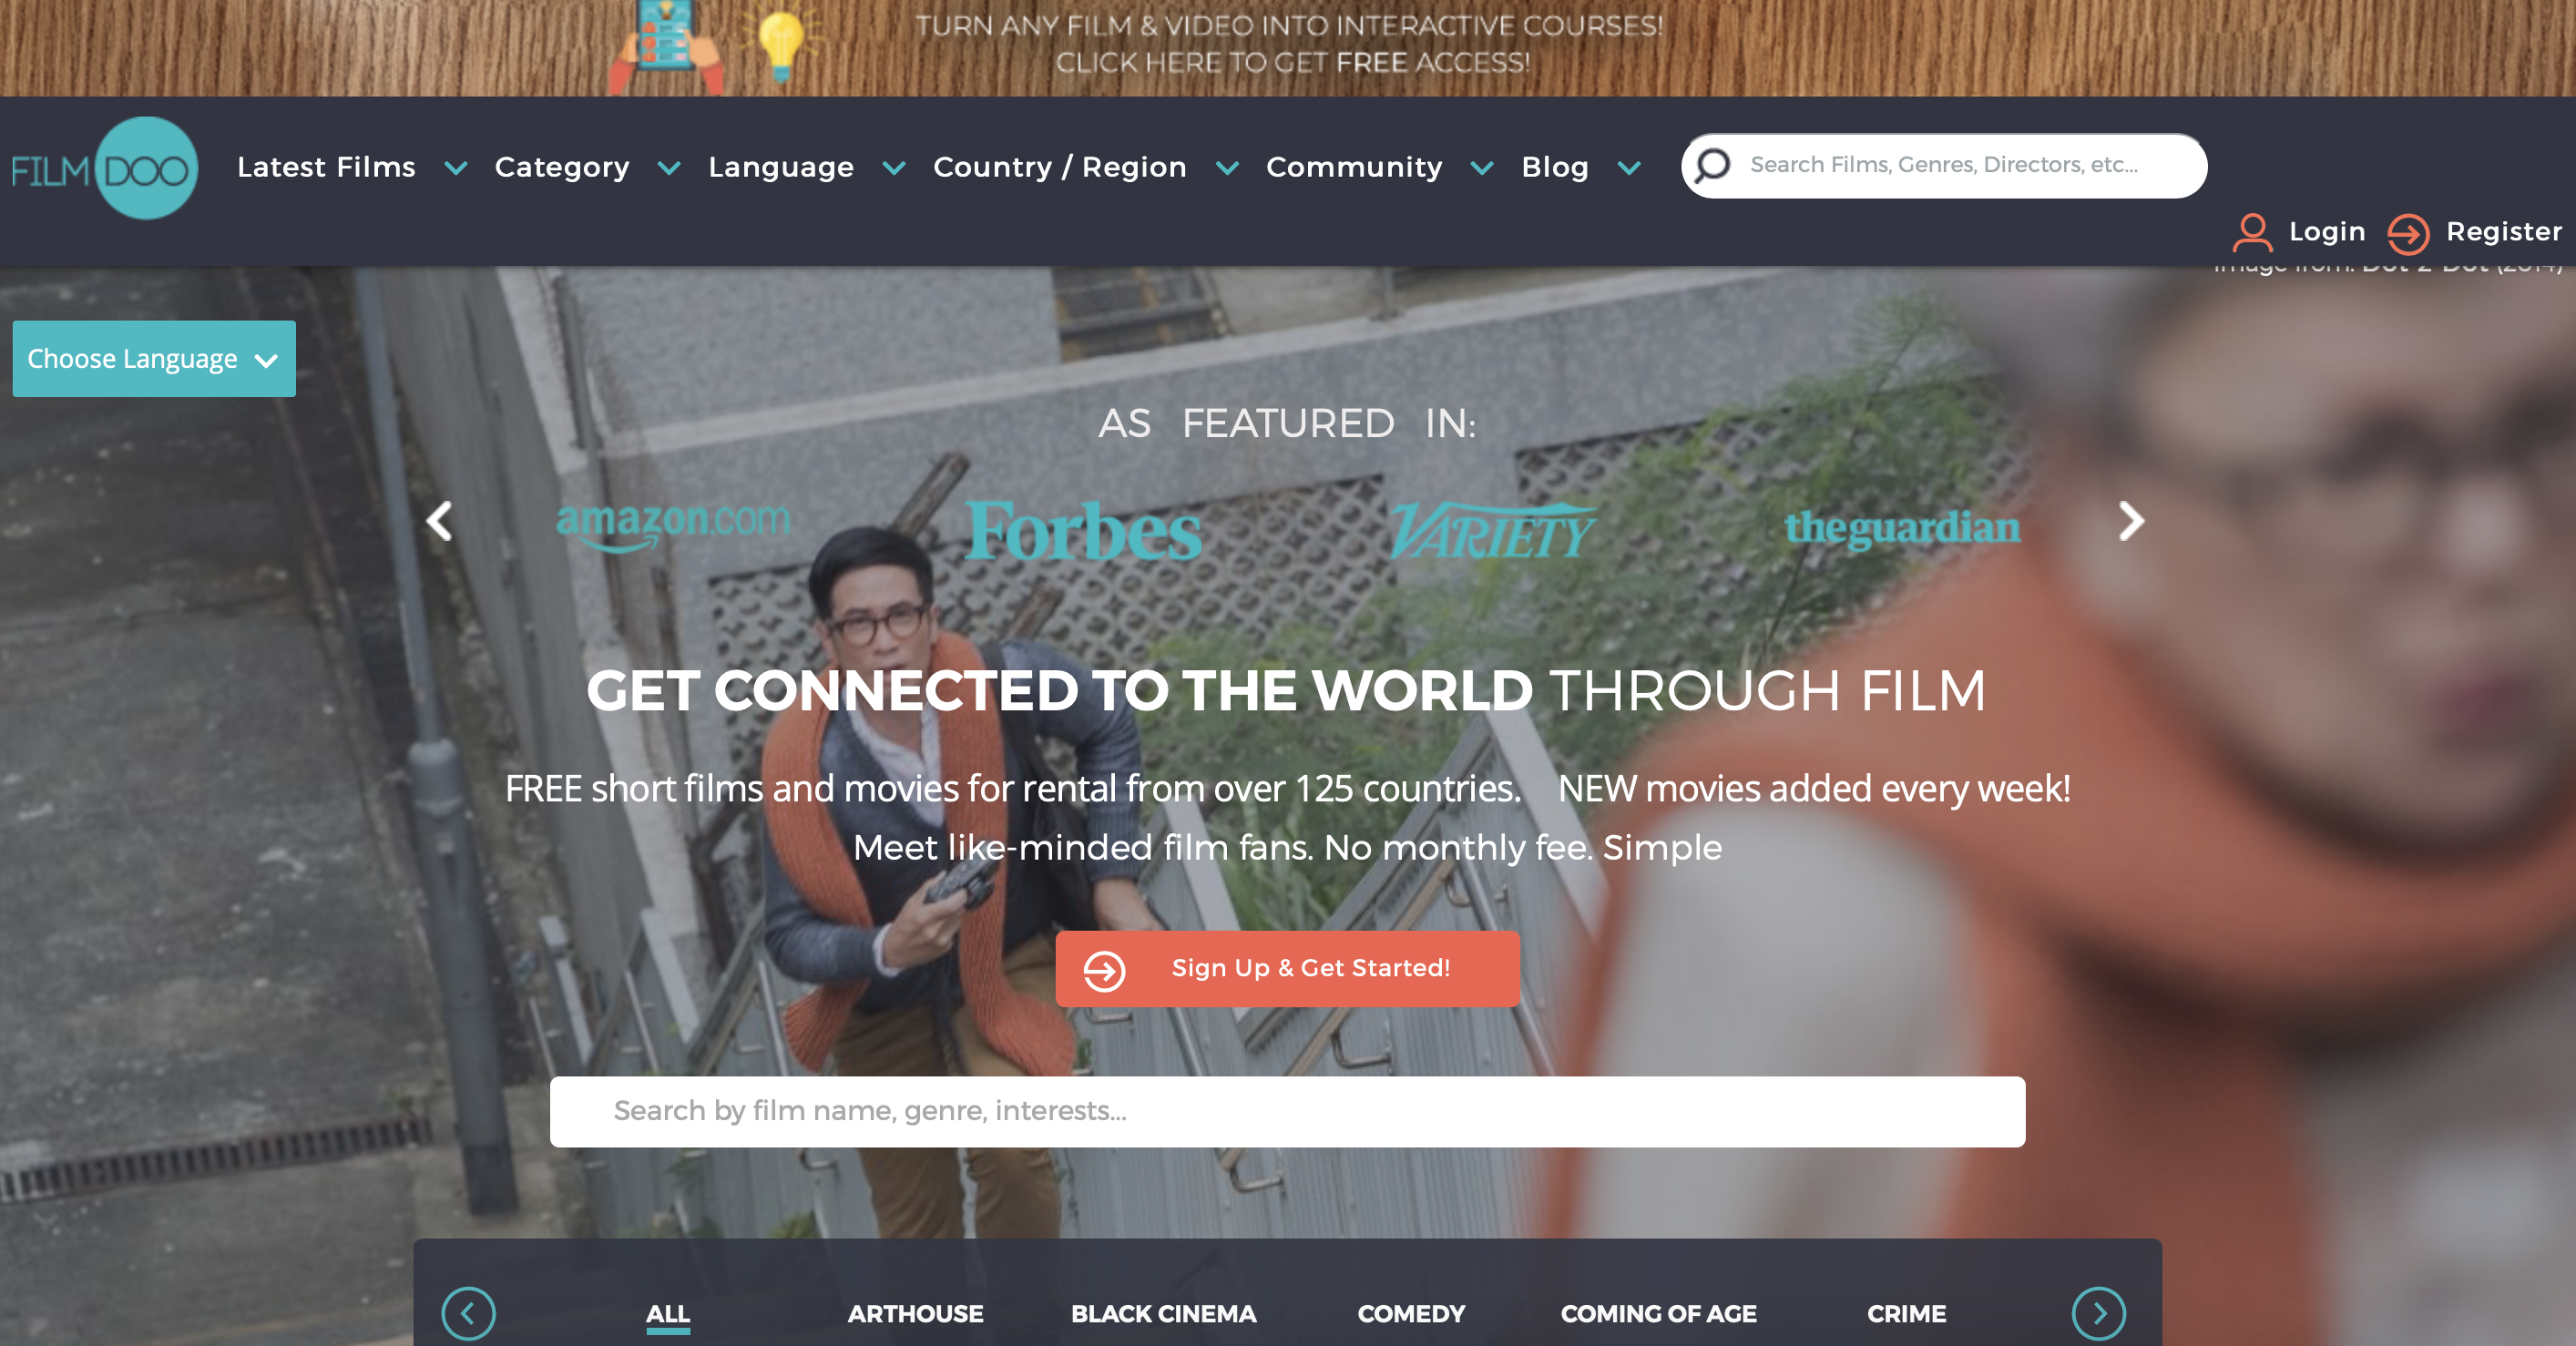 filmdoo streaming platform ranking by cultural hater